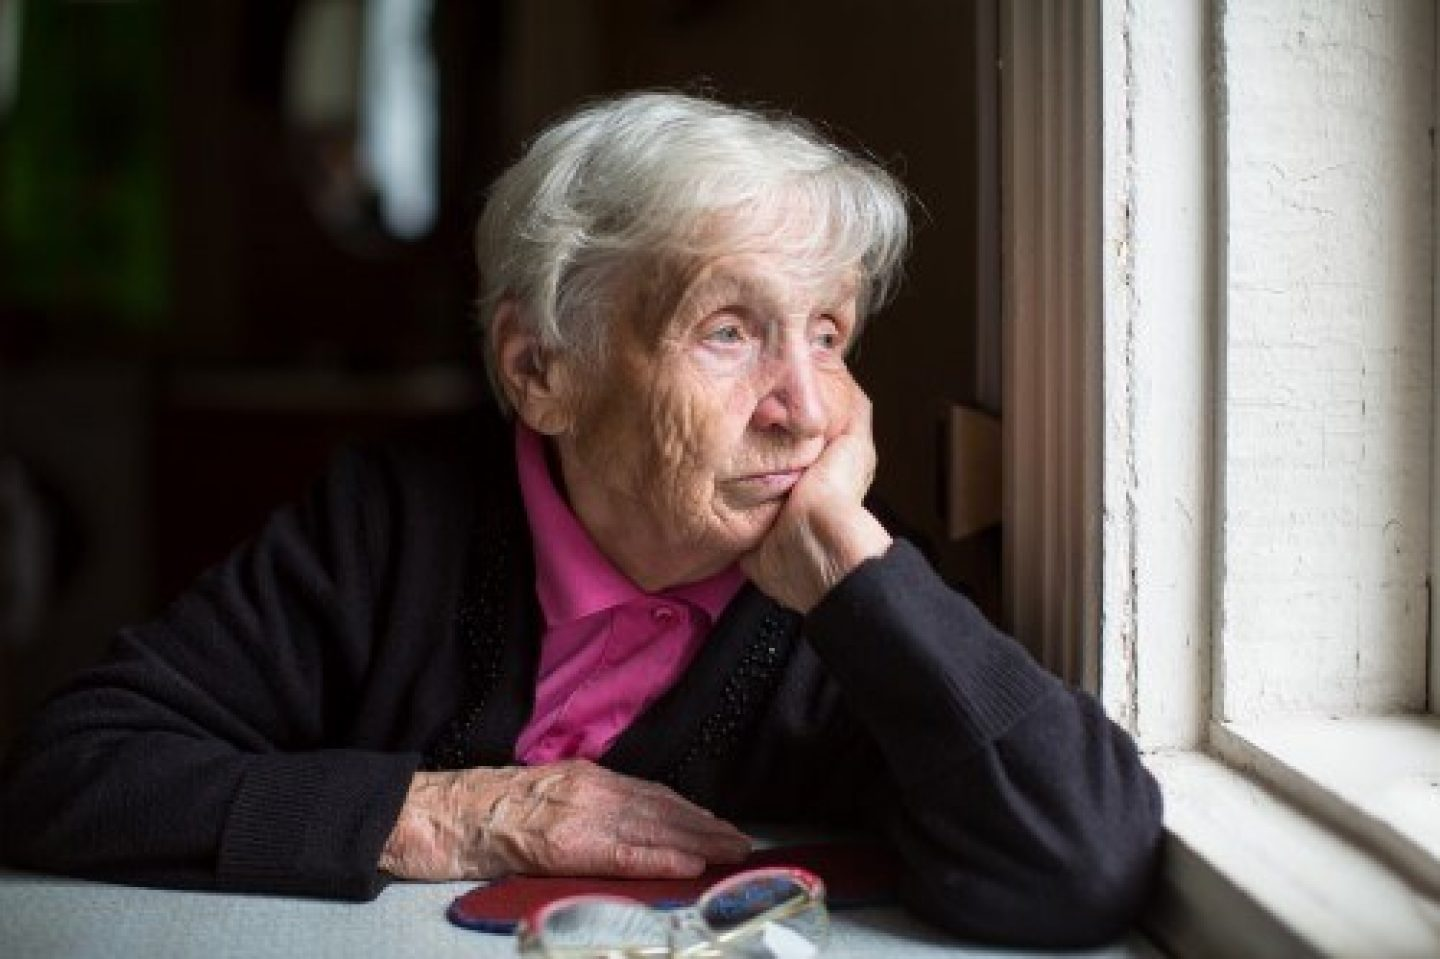 Pensive old woman looking out window